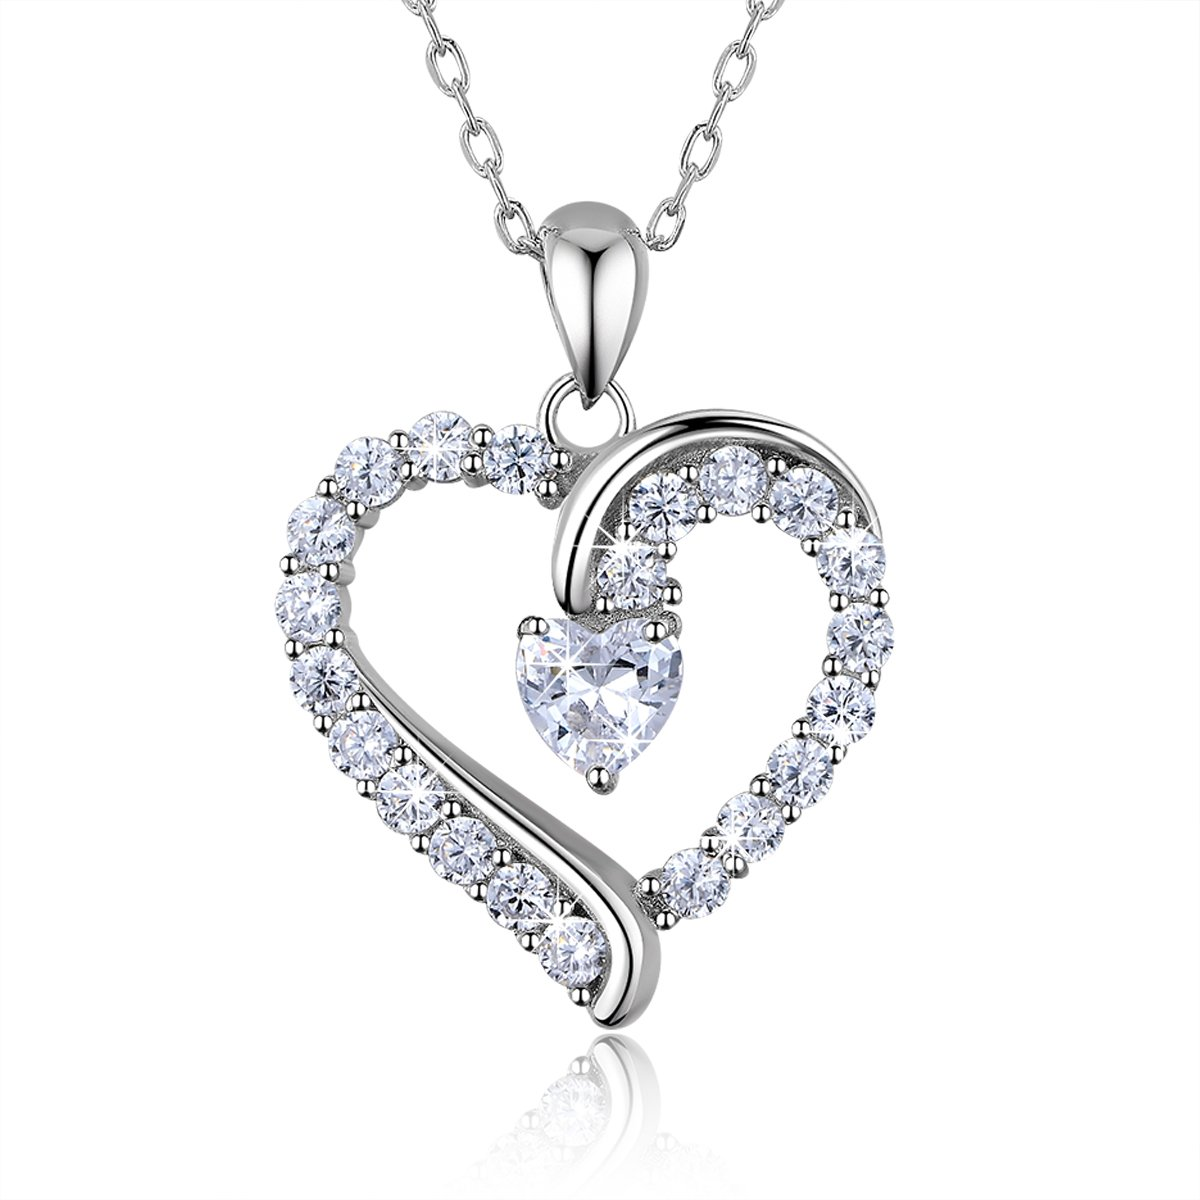 "grand choix de 2019 meilleur pas cher nouvelle apparence 925 Sterling Silver heart necklace - Billie Bijoux ""You Are the Only One""  Love Platinum Plated Diamond pendant 18"